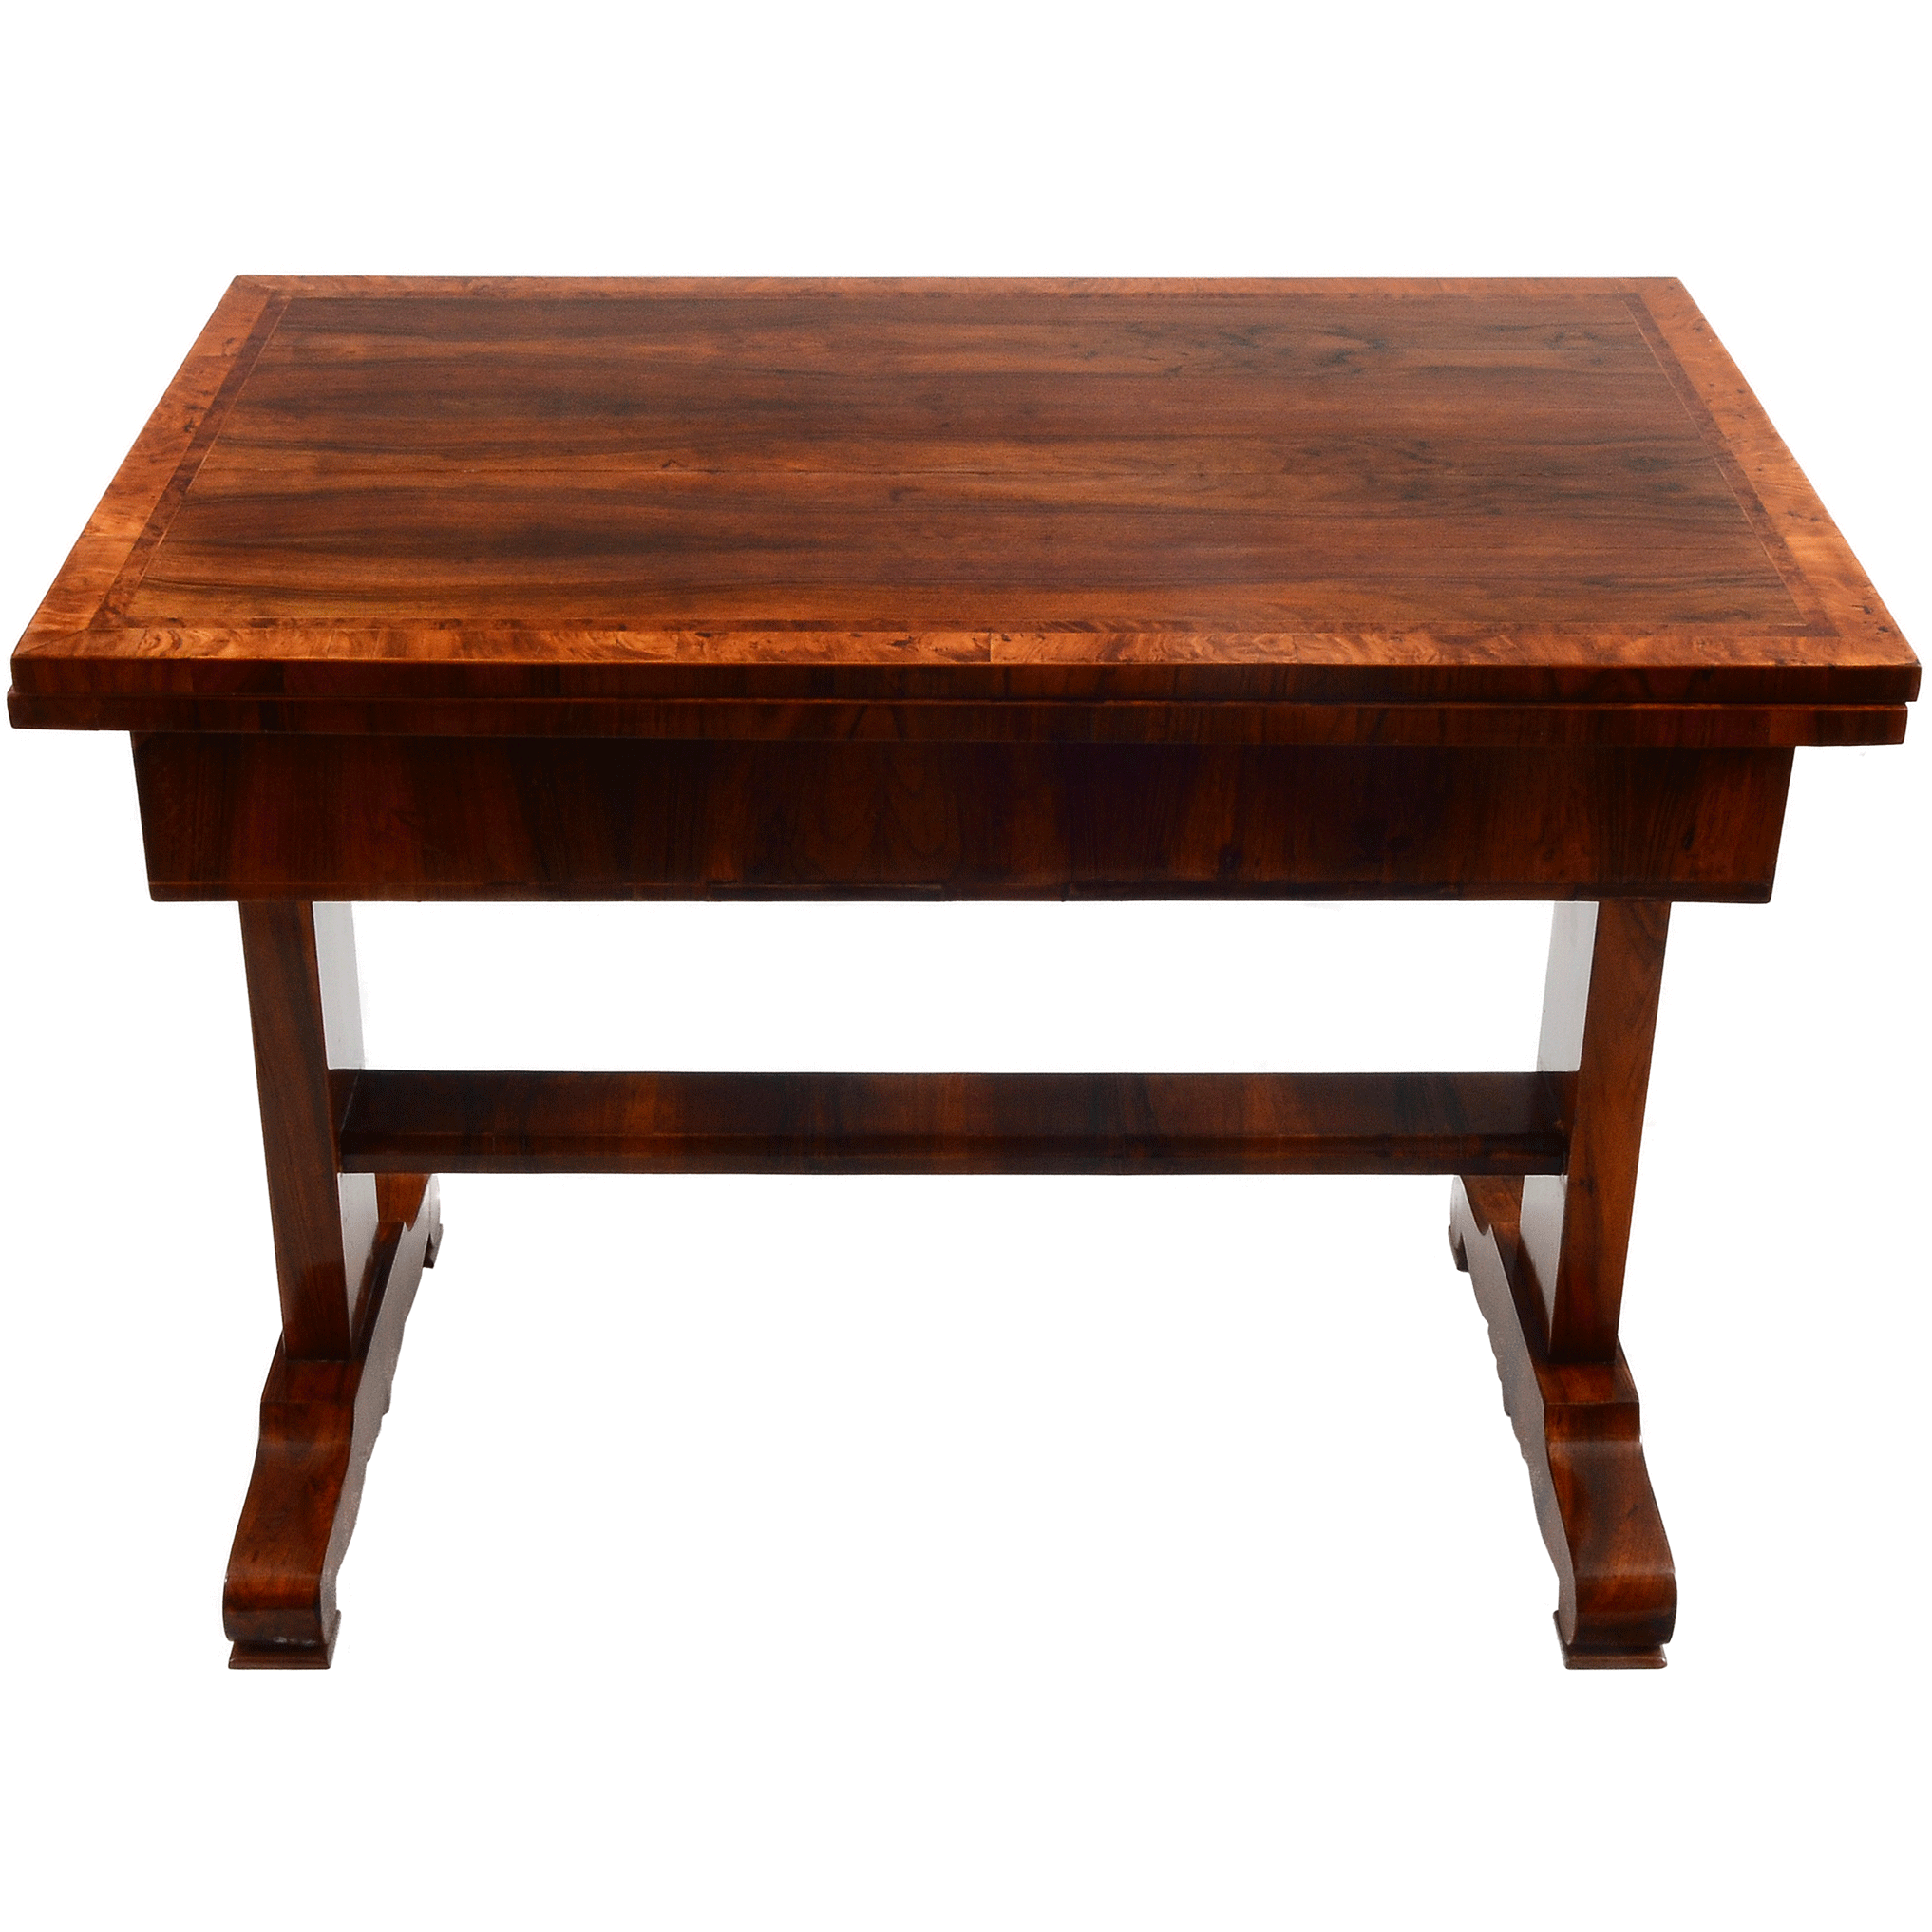 European Biedermeier Square Flip Top Dining Table